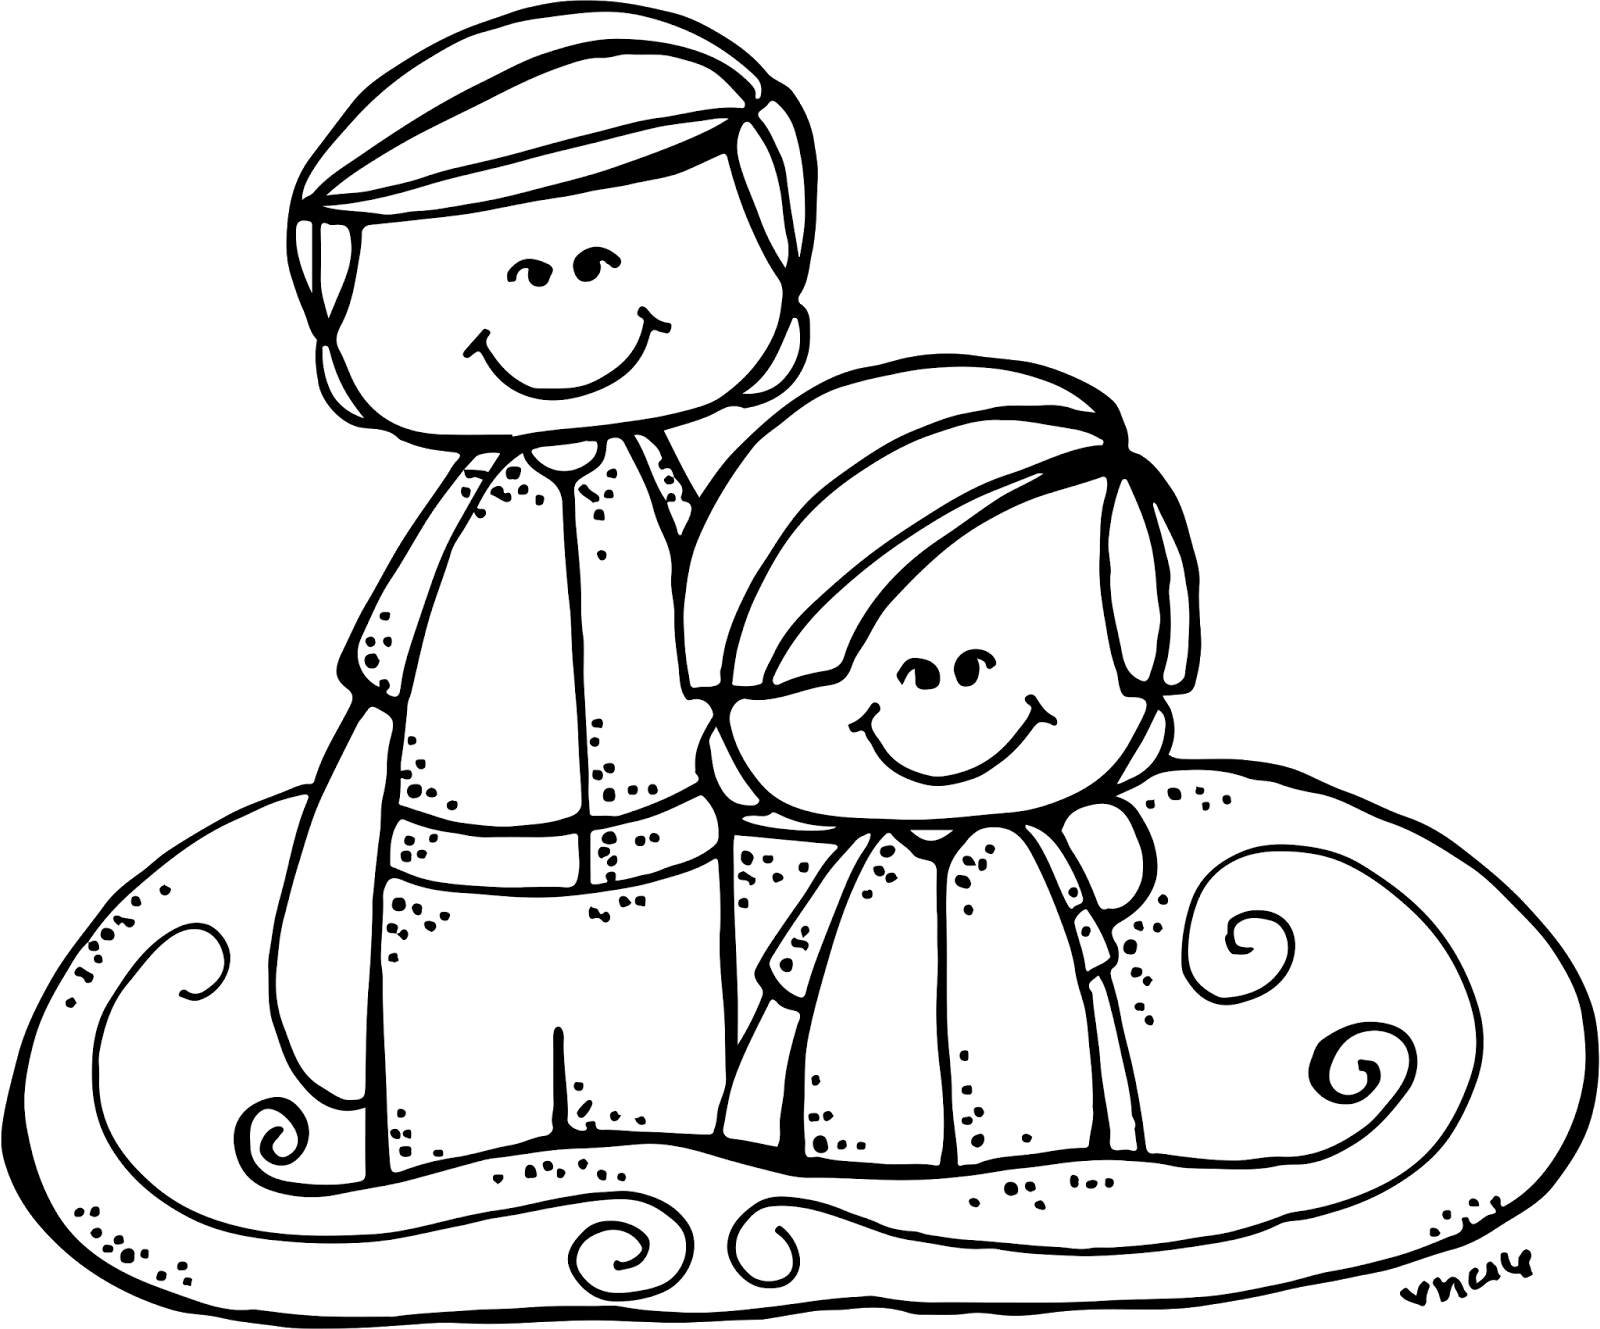 Baptism clipart lds clipart images gallery for free download.